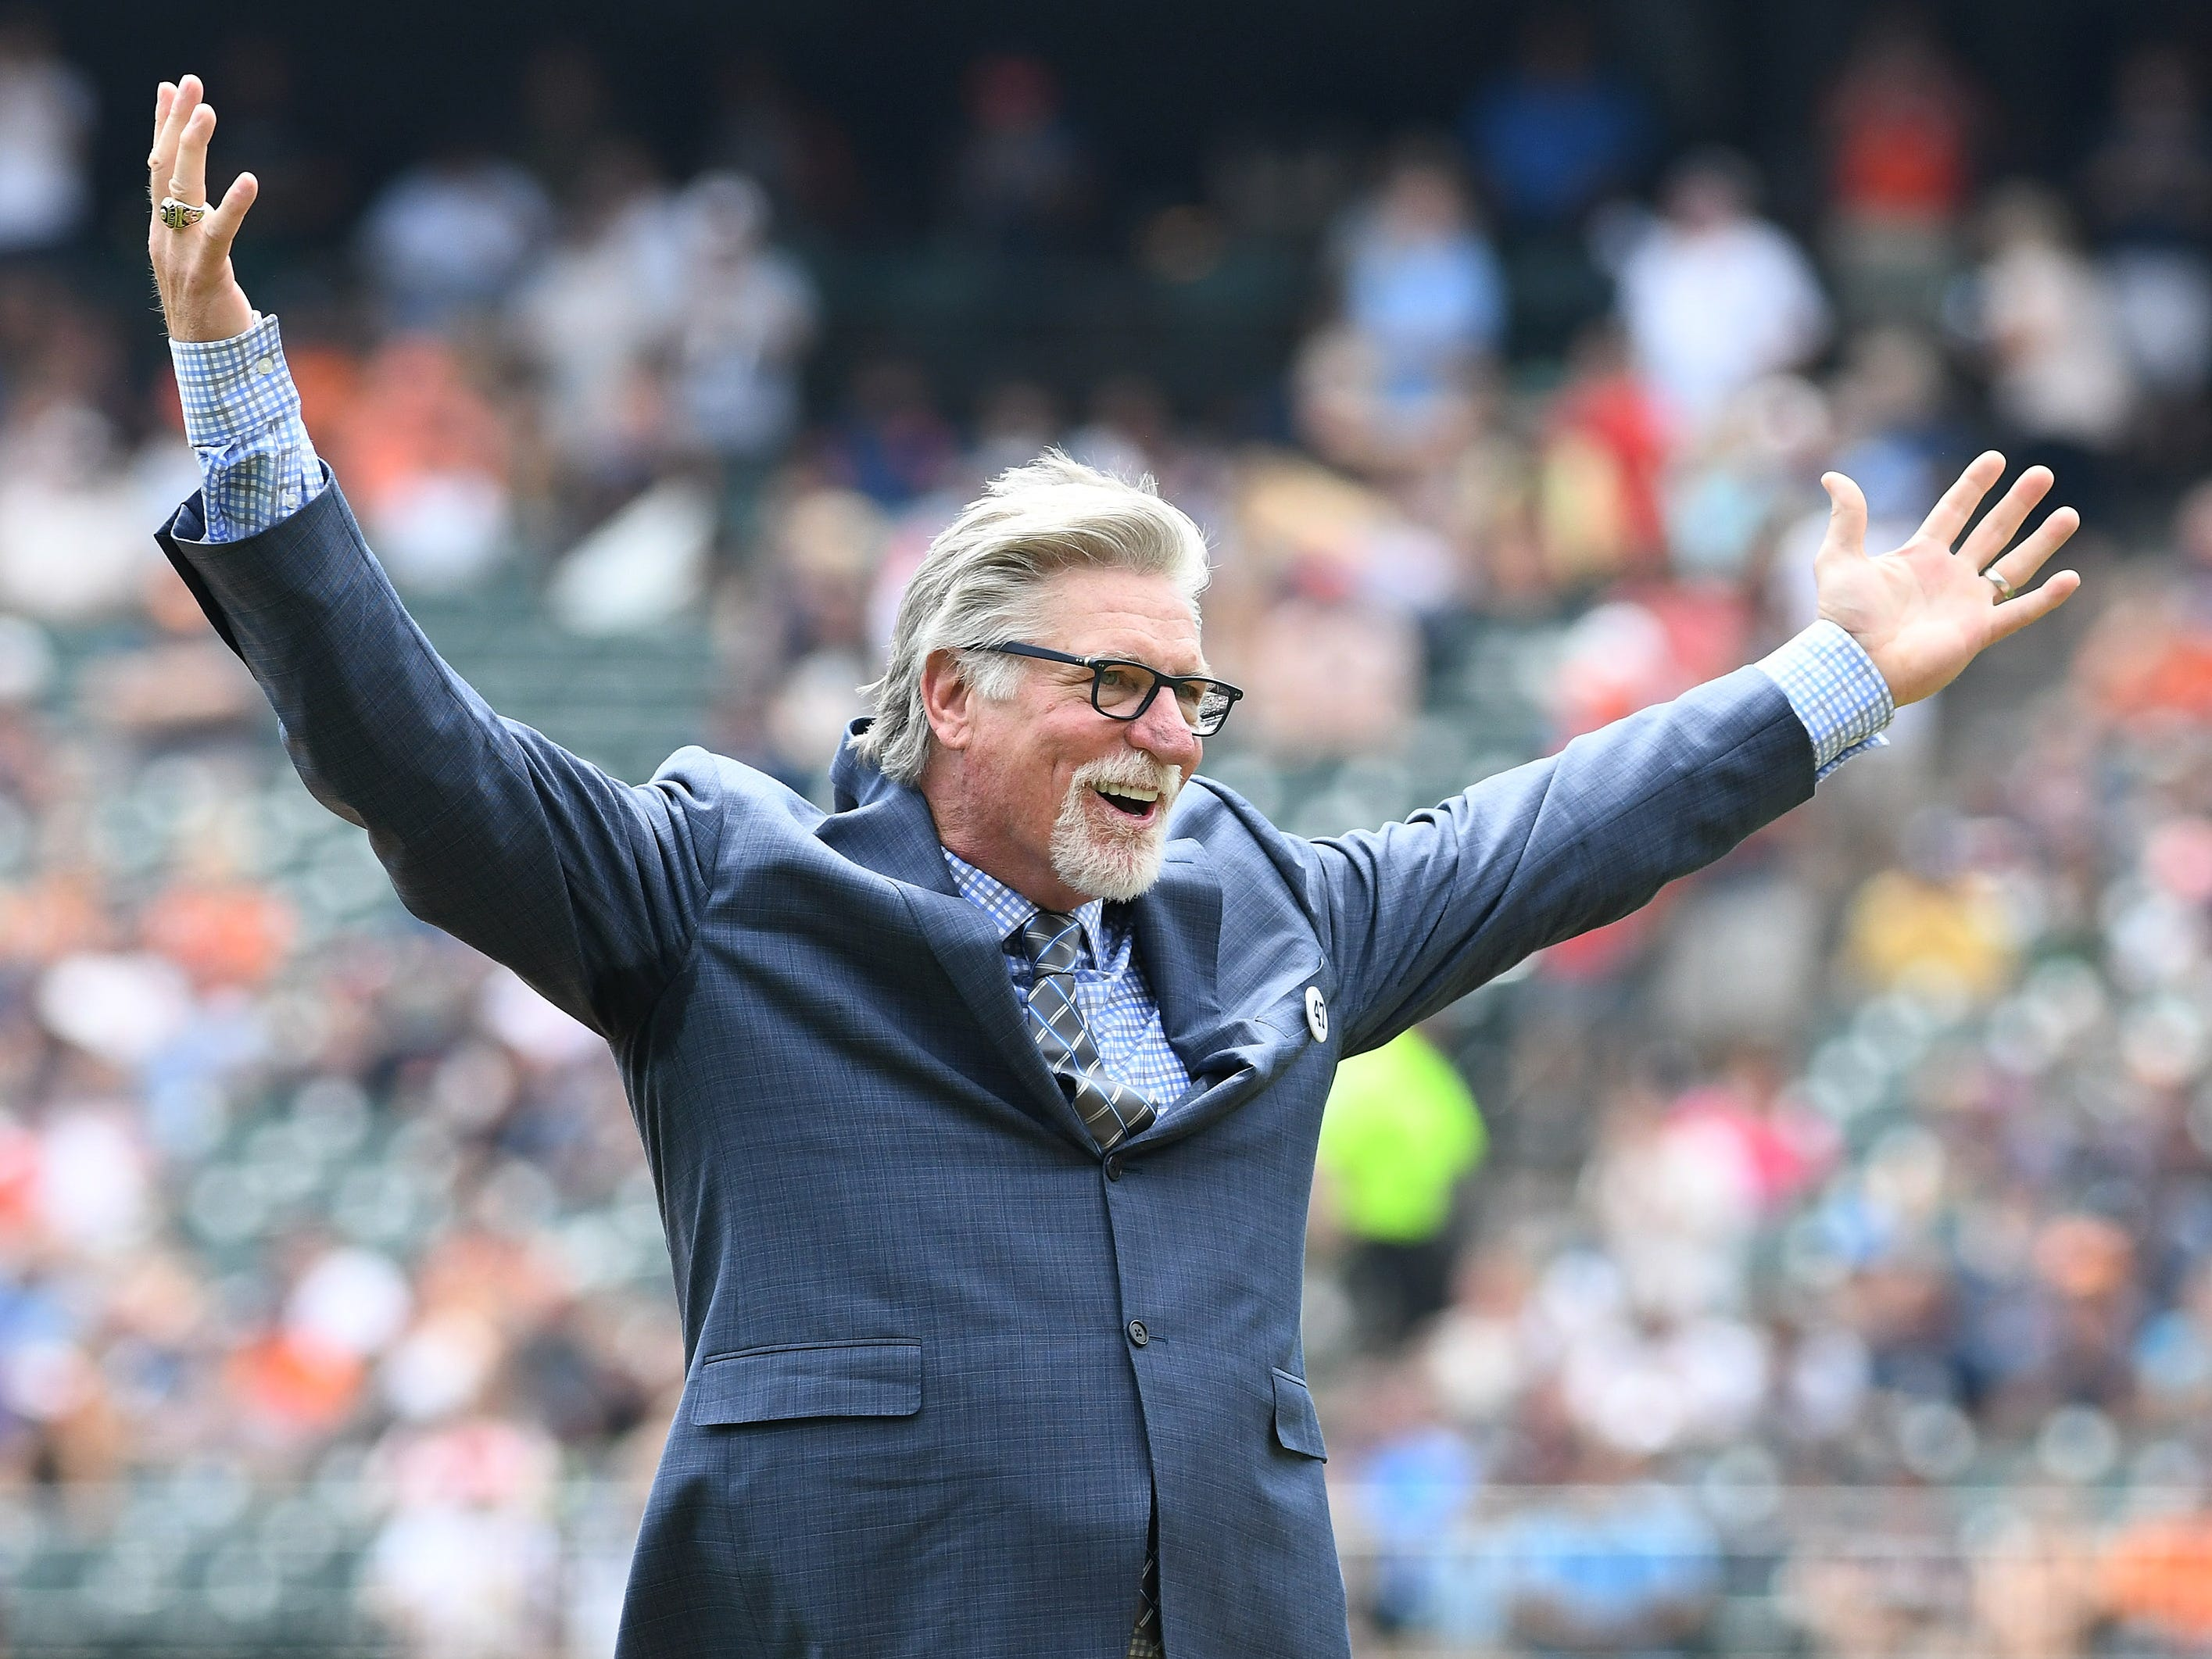 Jack Morris after he throws out the ceremonial first pitch before the game.